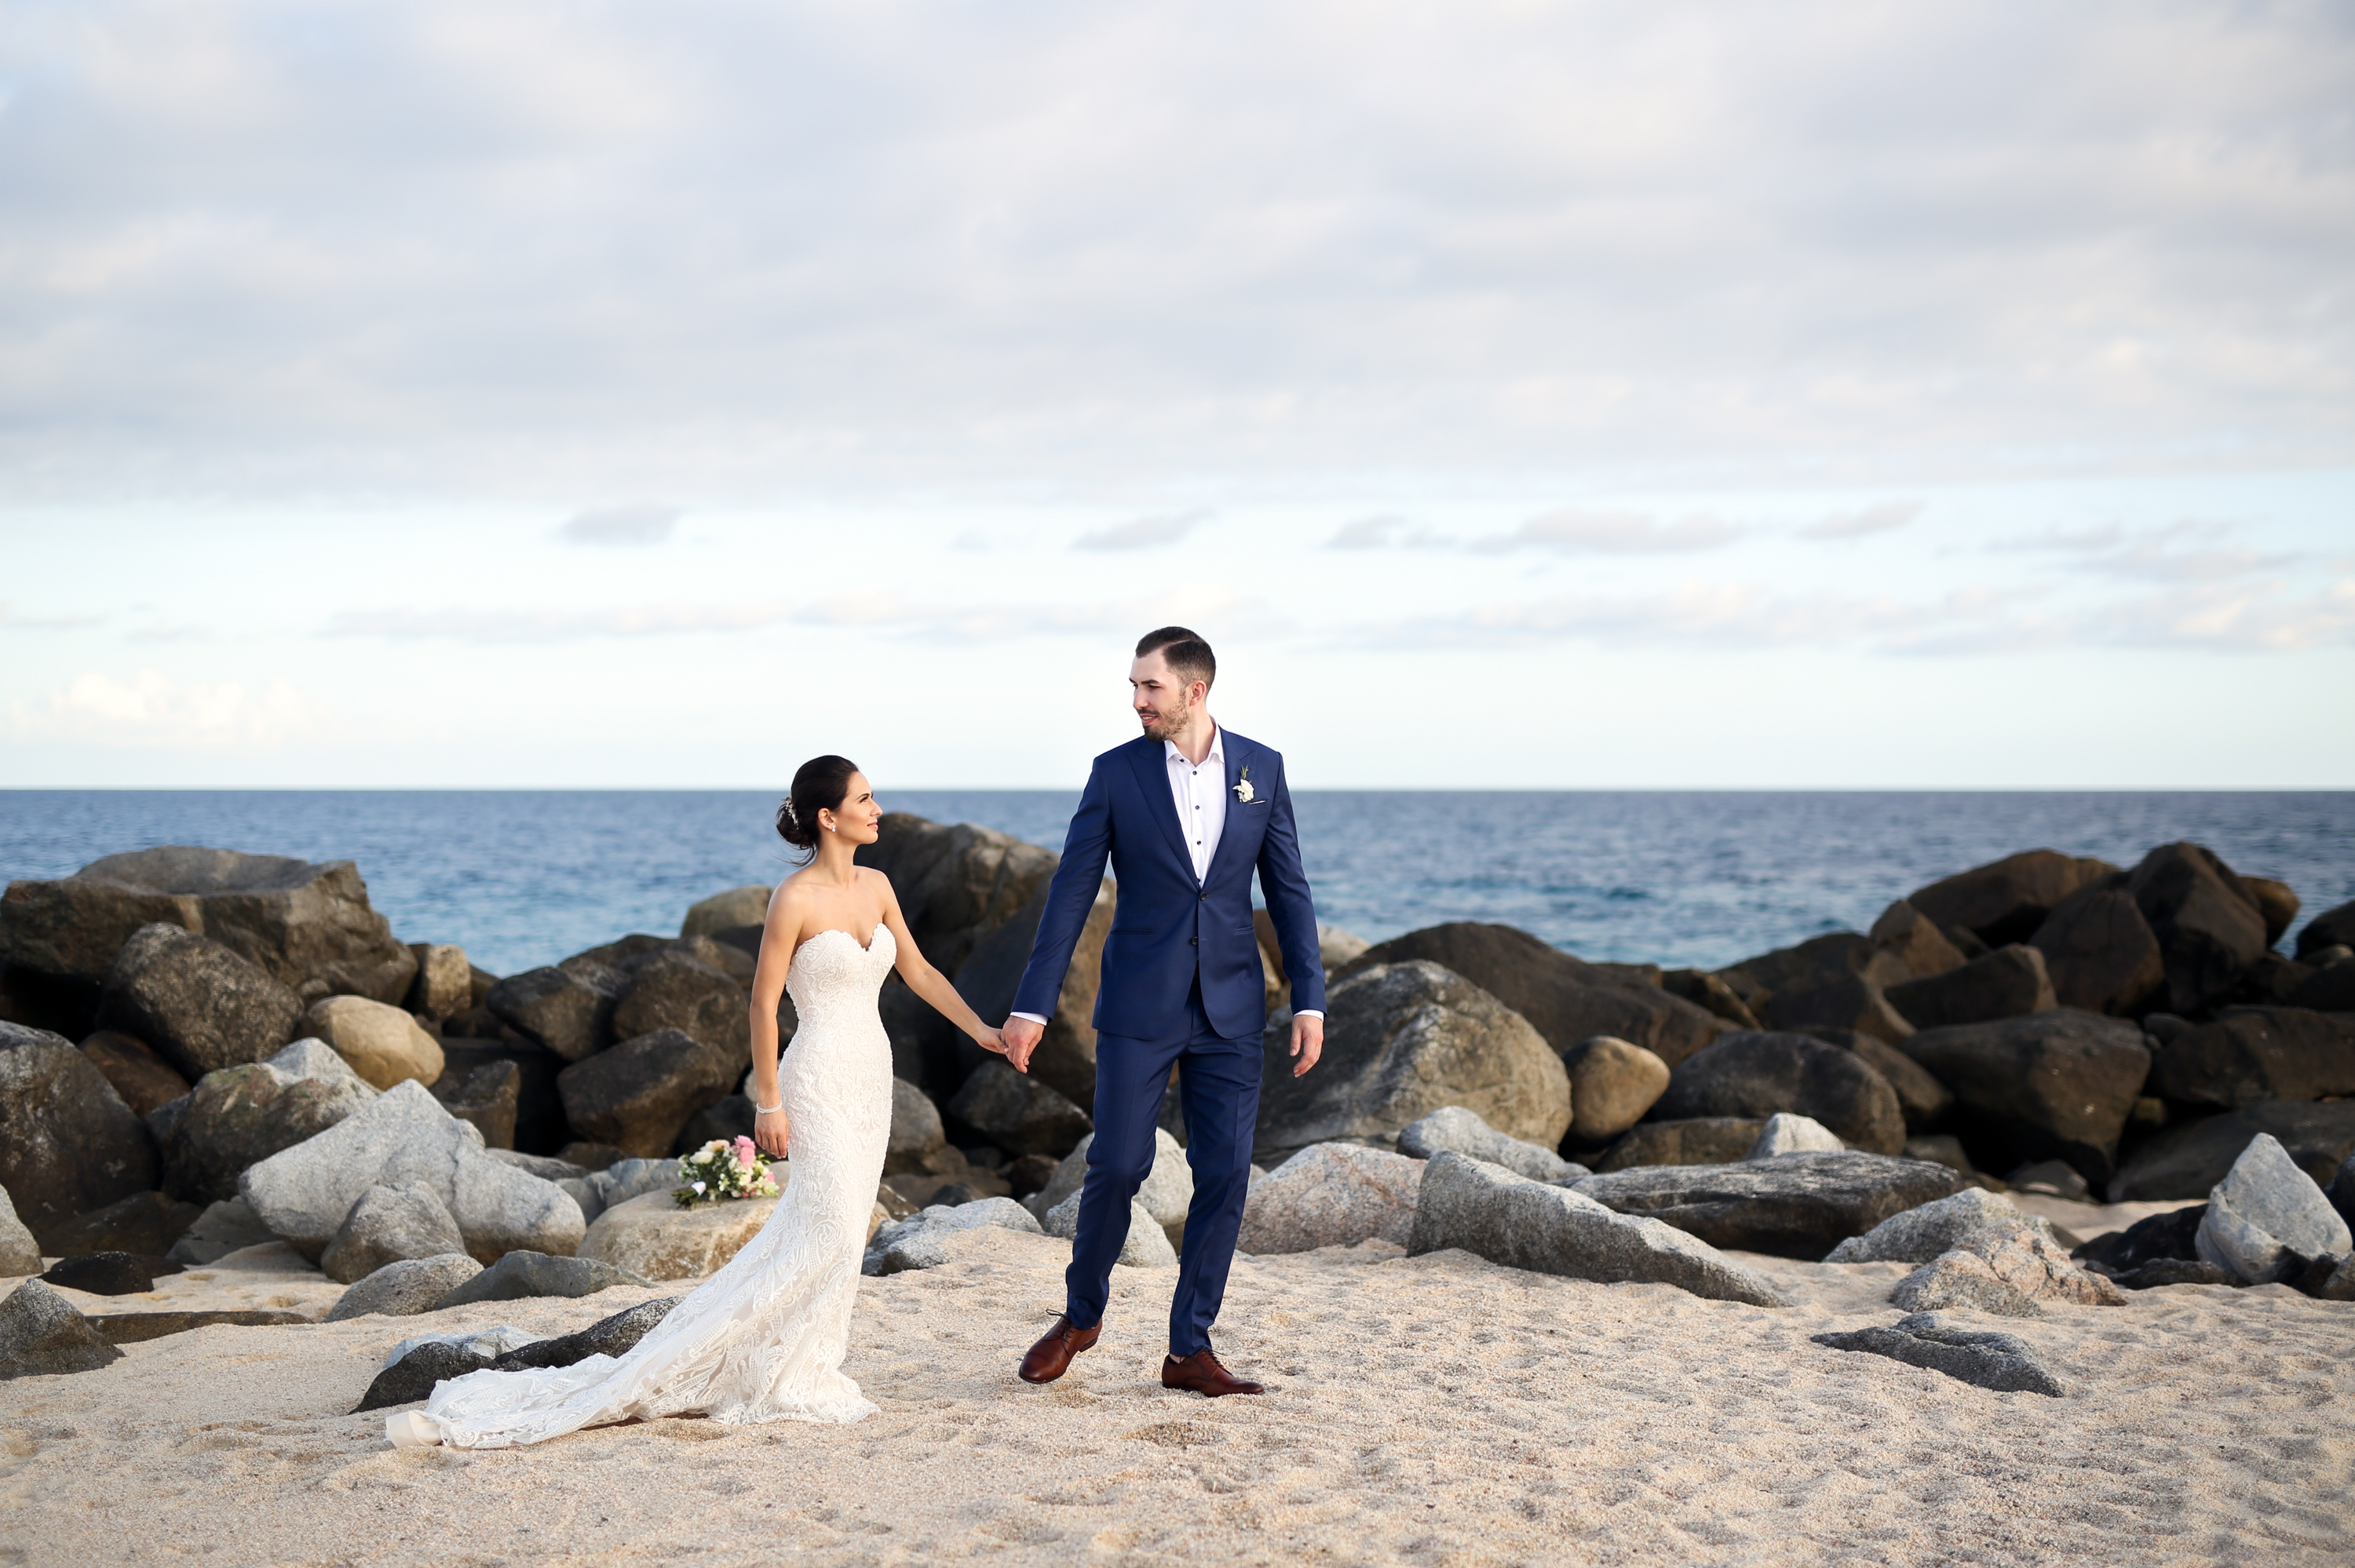 Beach Walk Paradisus Mexico Los Cabos Sea of Cortez Zsuzsi Pal Photography Destination Wedding